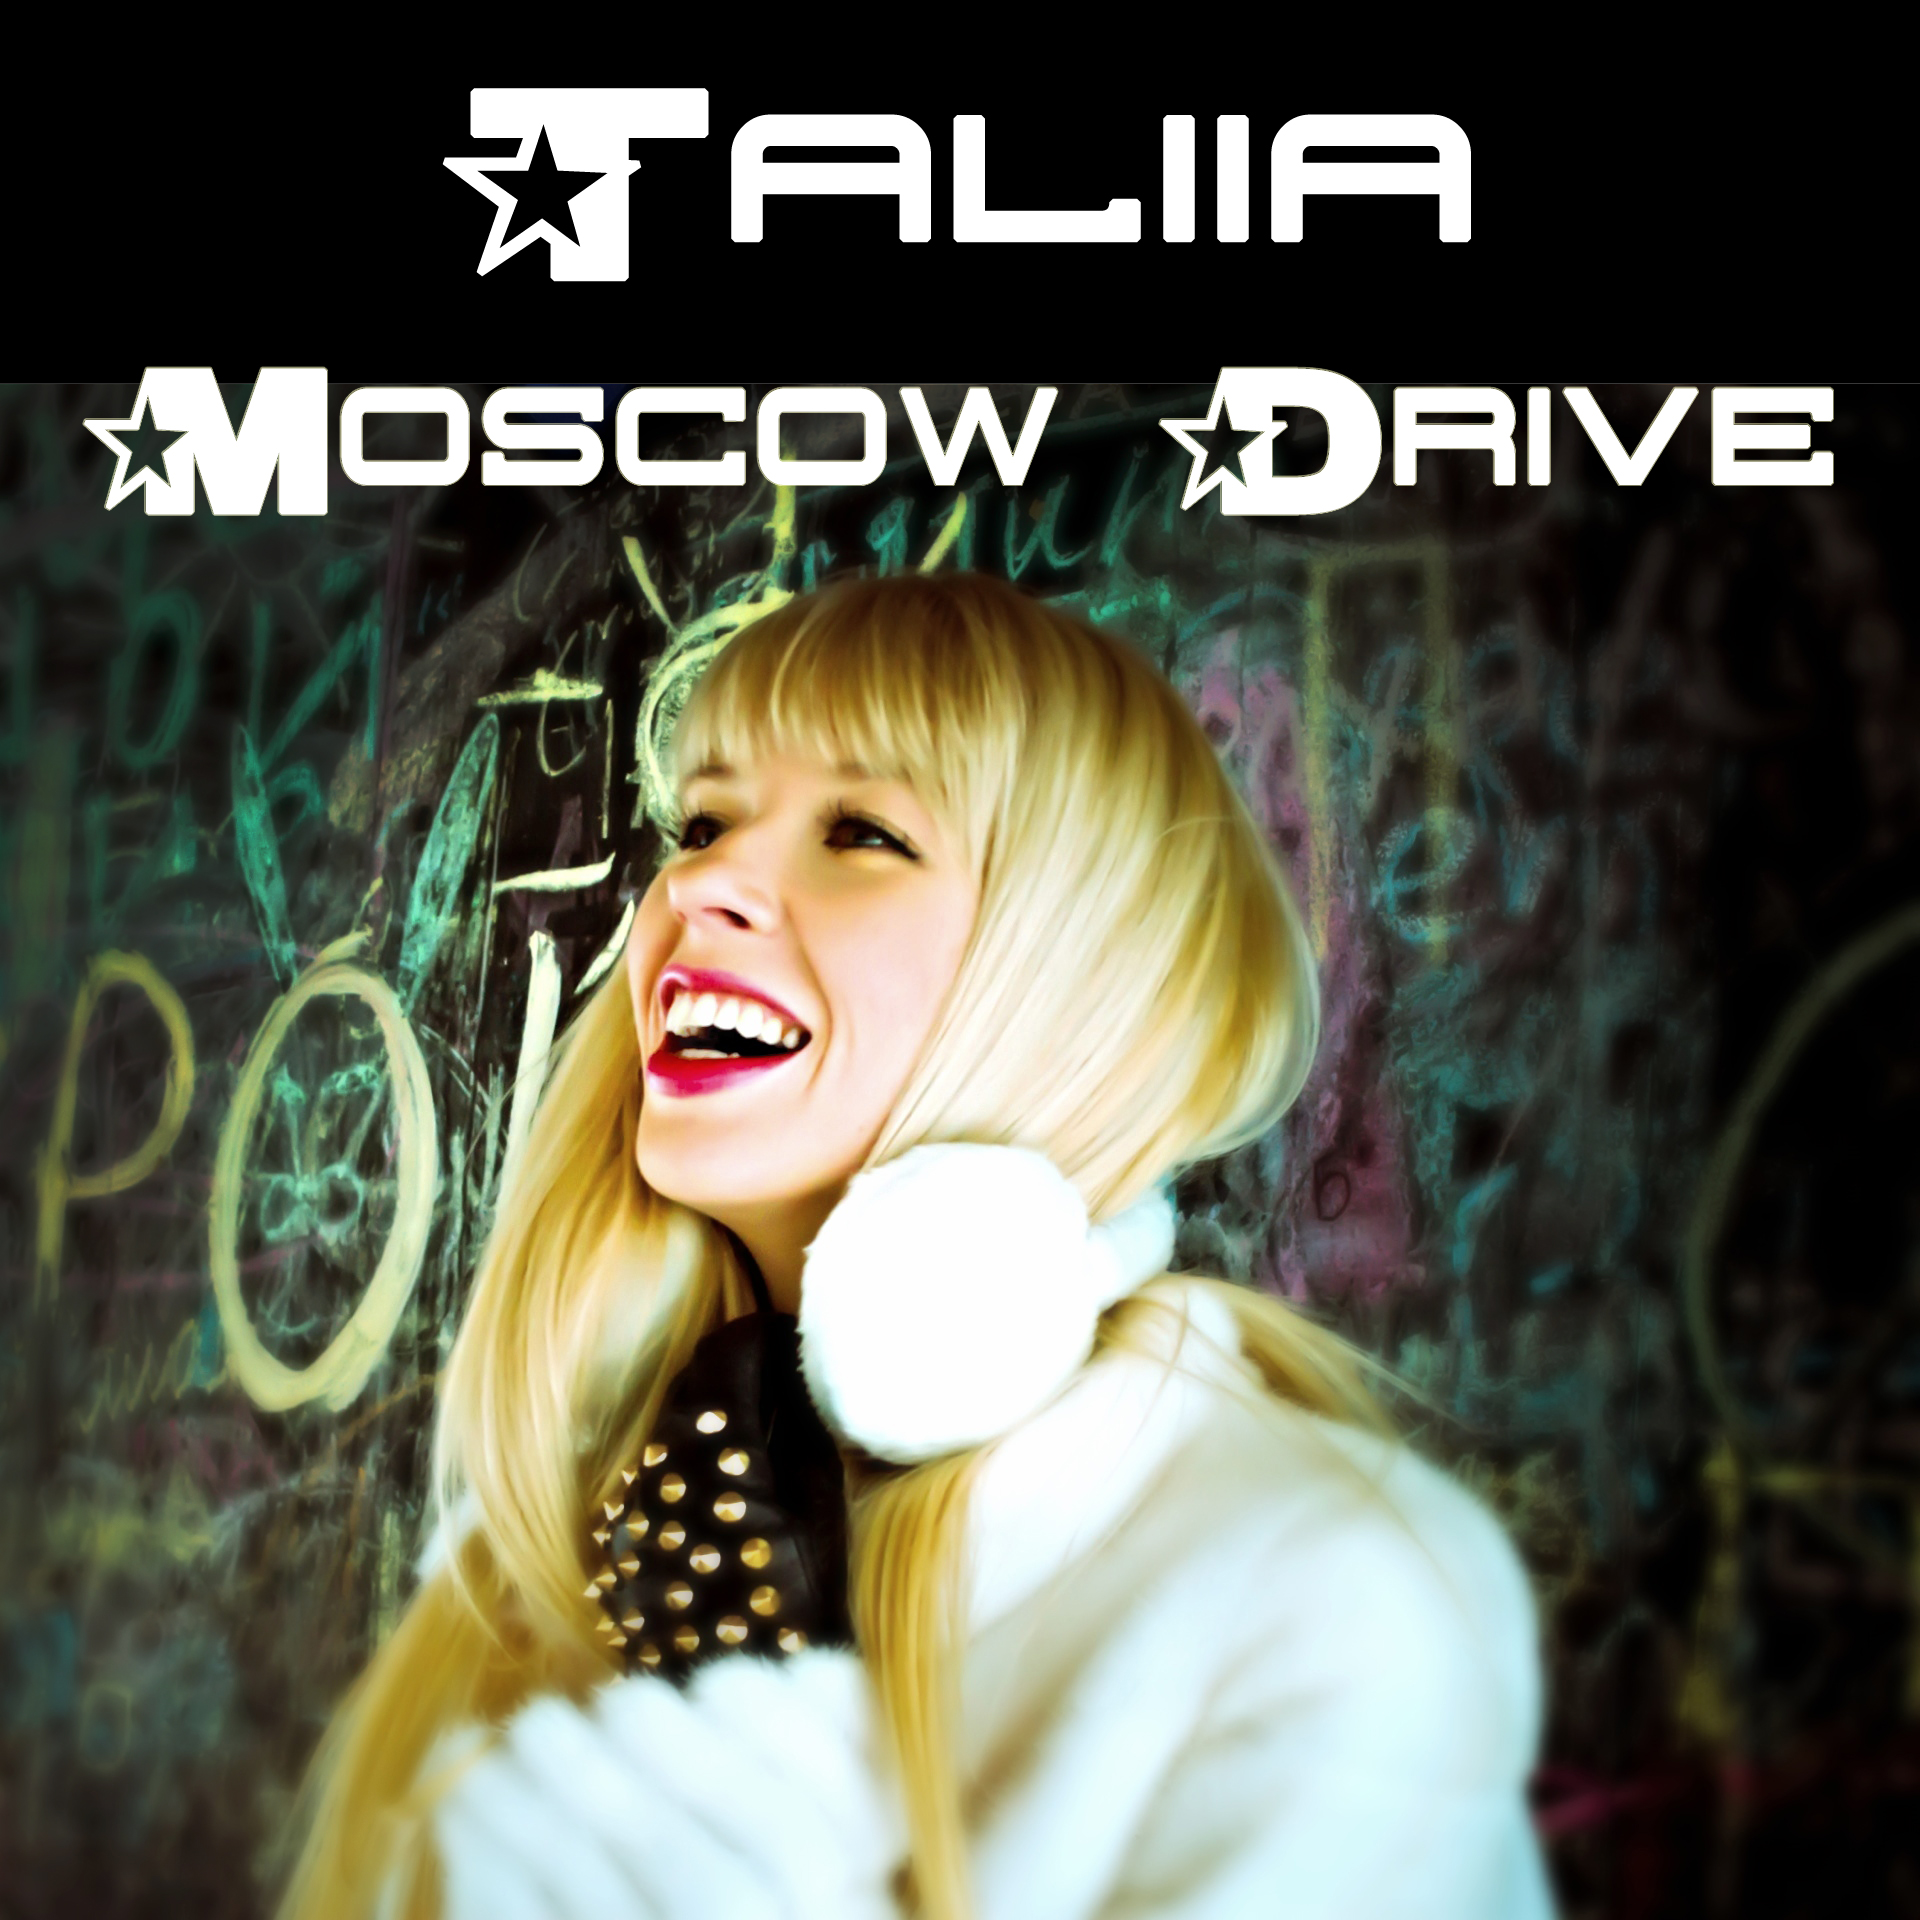 Moscow Drive Artwork